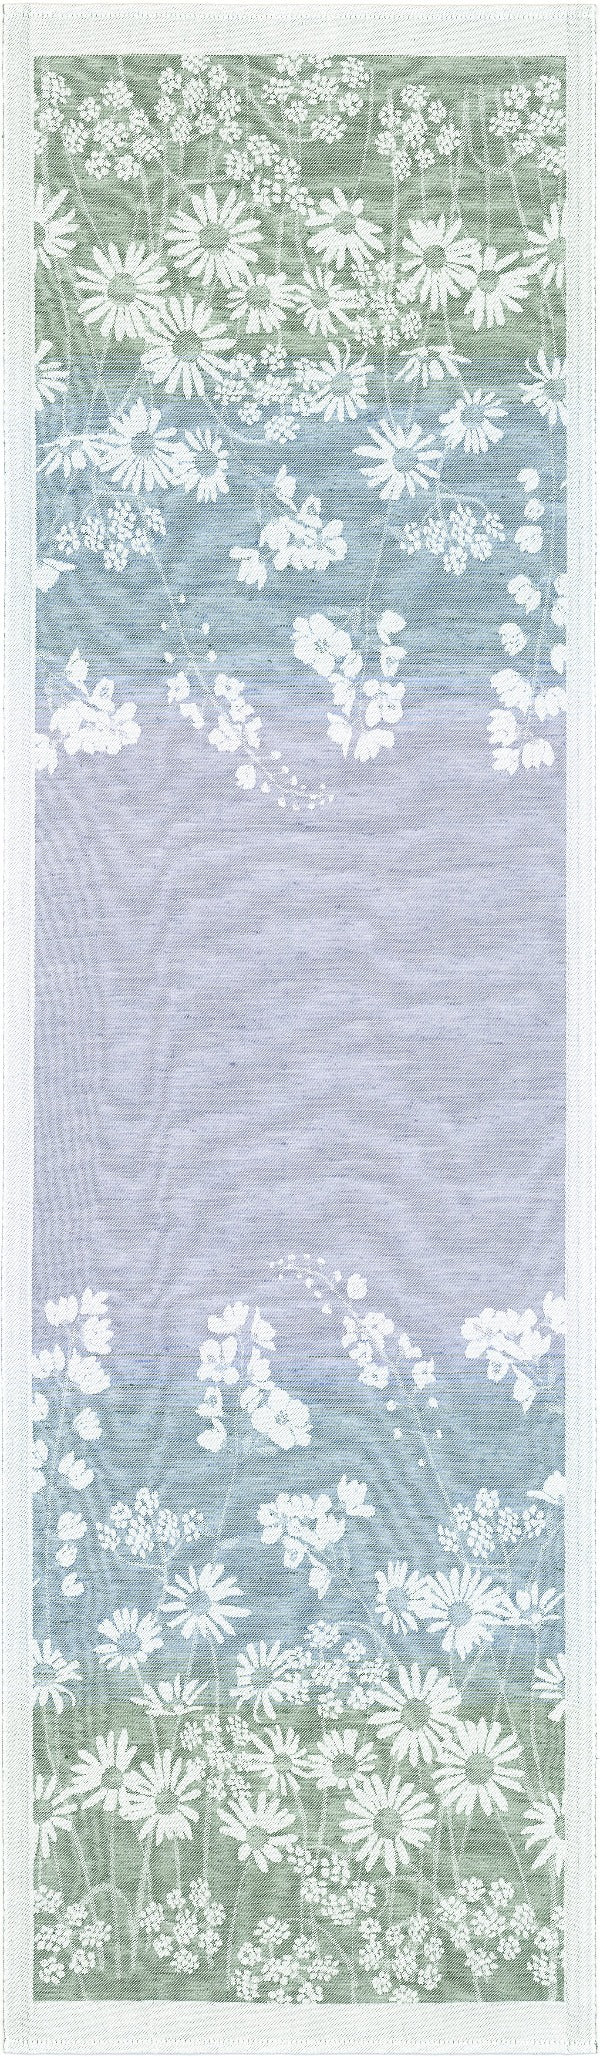 Ekelund Table Runner Sommarhimmel